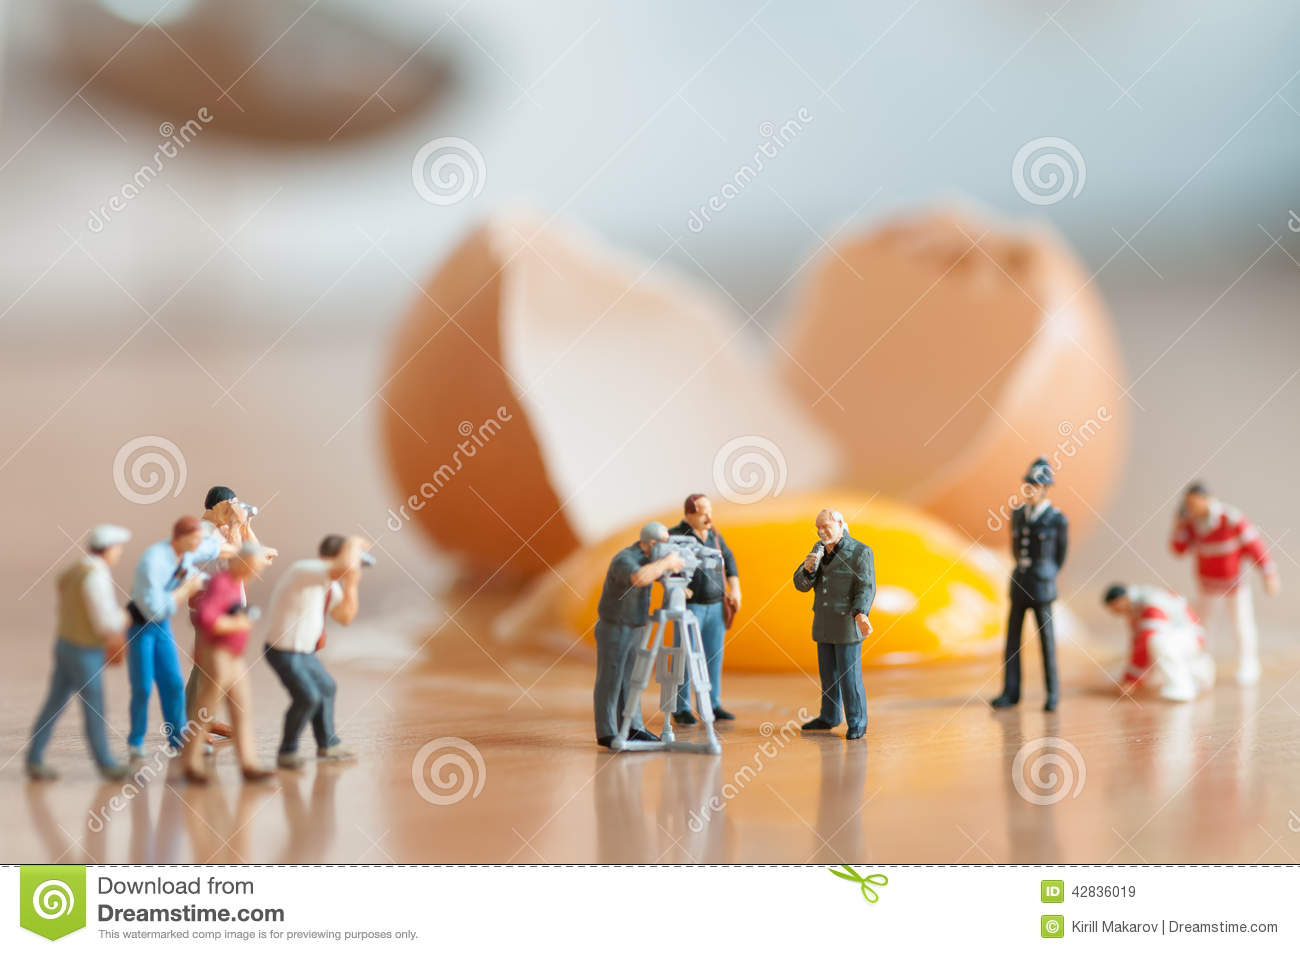 Unfallgefahr In Der Küche Broken Egg Accident In The Kitchen Stock Image Image Of